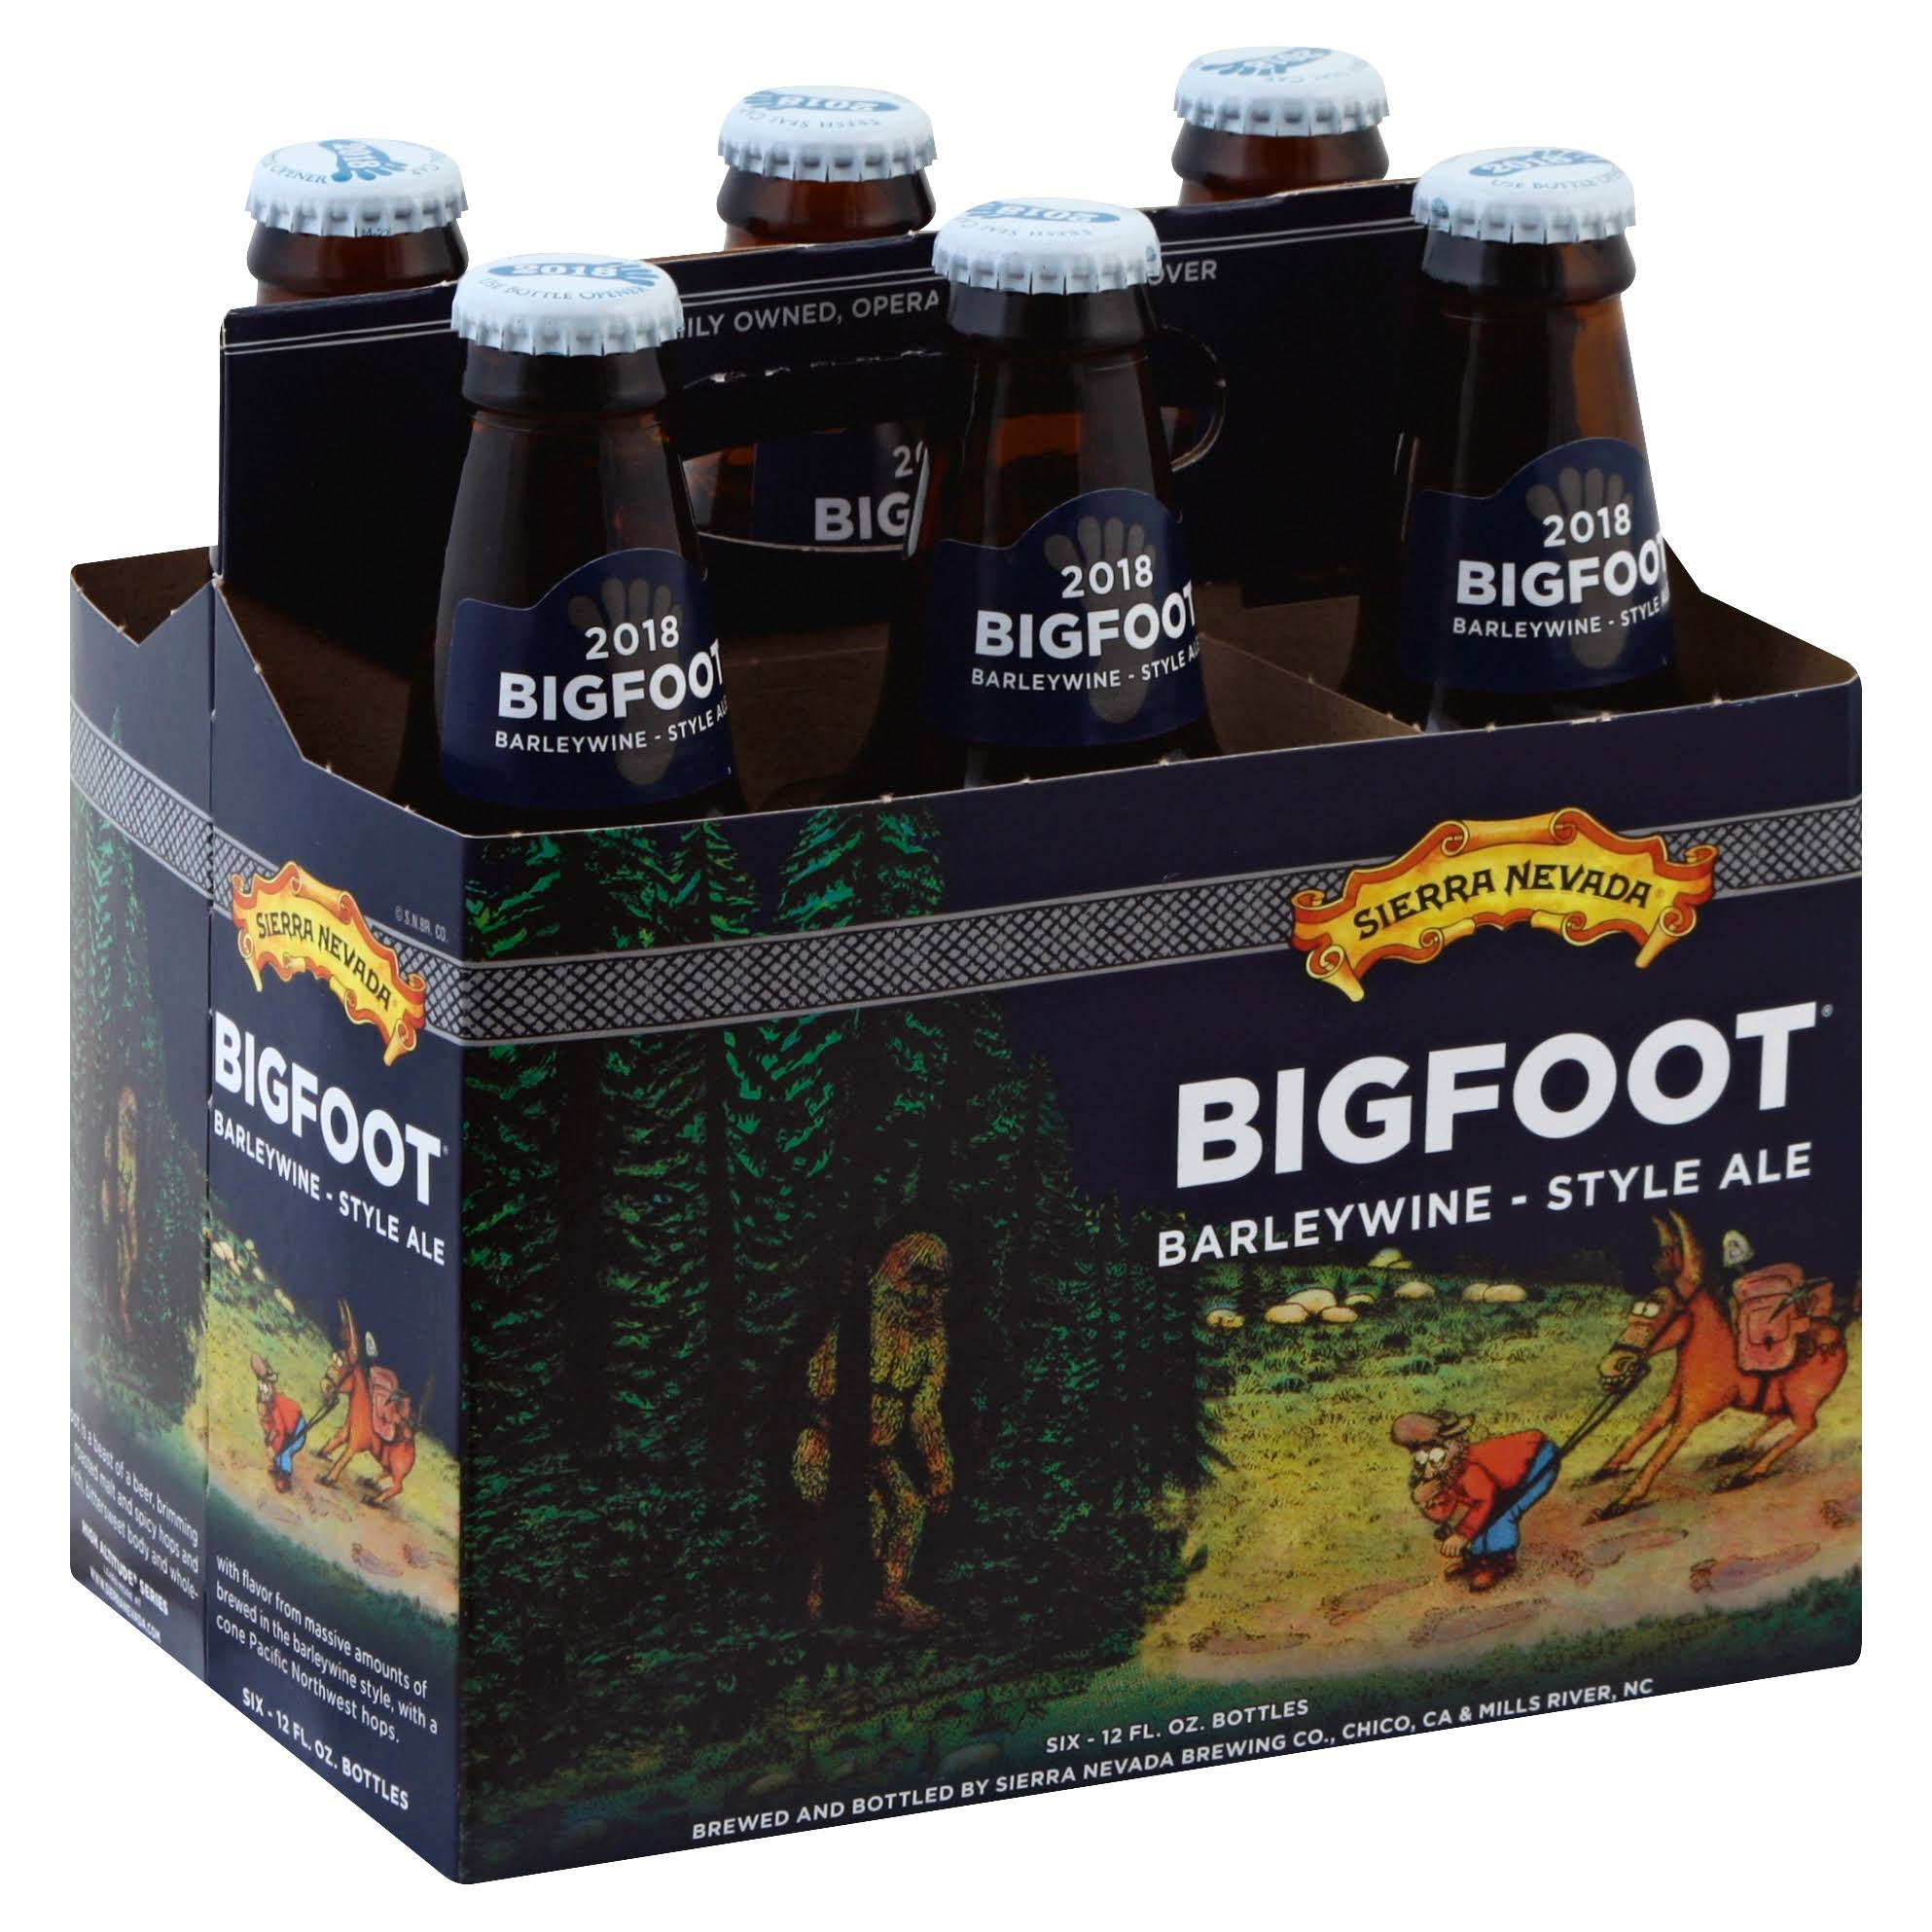 Sierra Nevada Bigfoot Barleywine Style Ale - 6 Pack